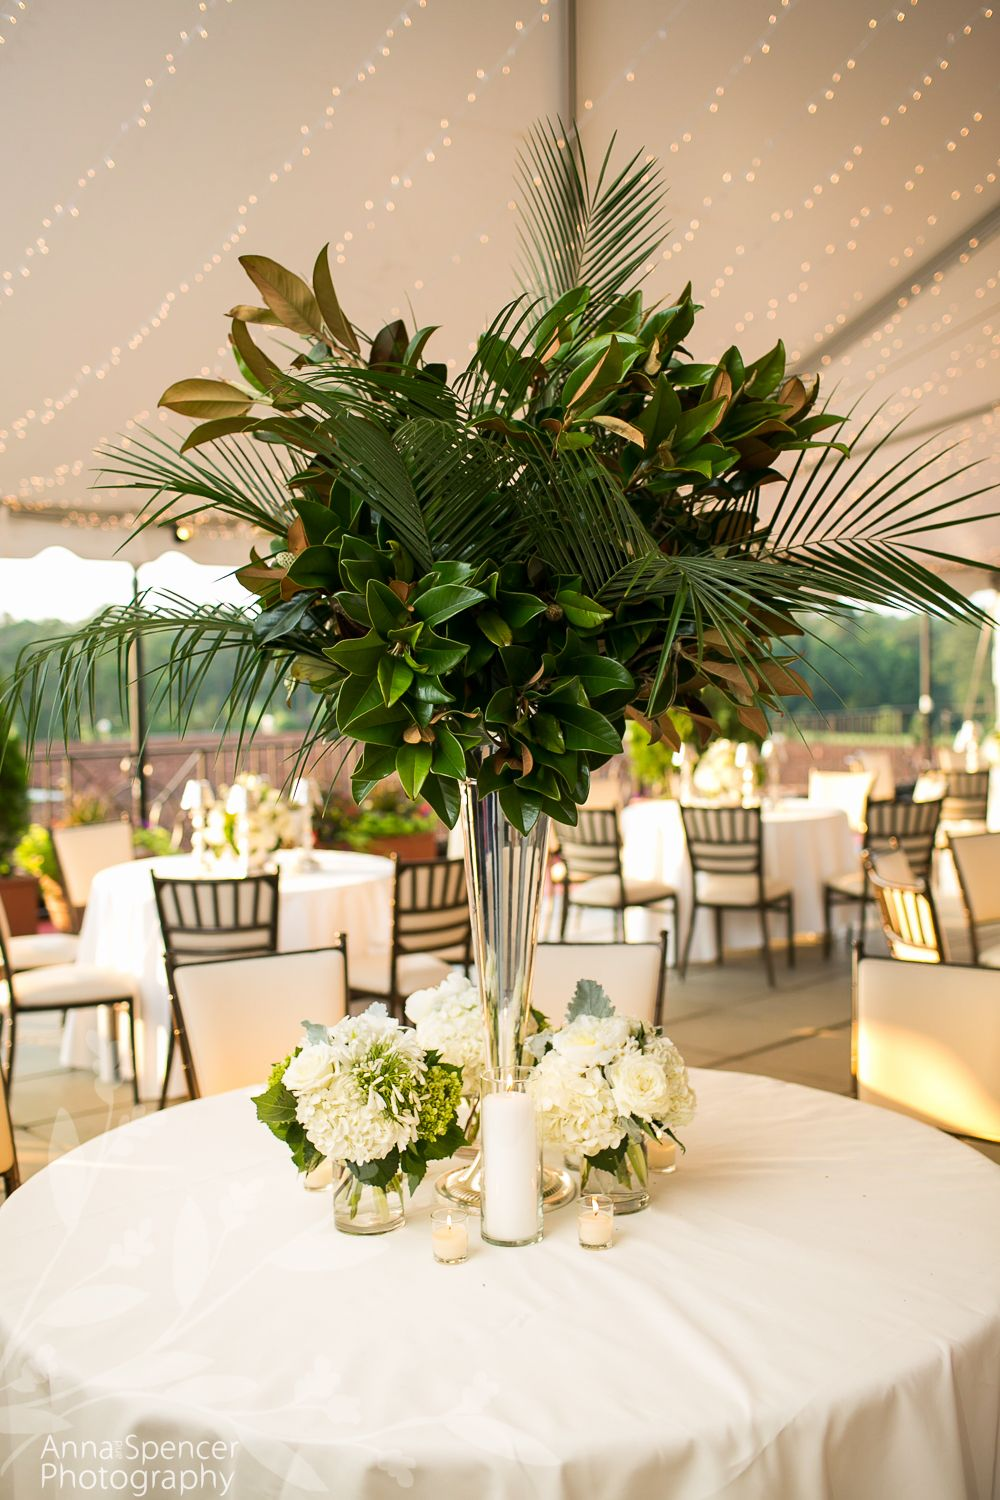 Tall Greenery Based Centerpiece With Magnolia Leaves And Low White